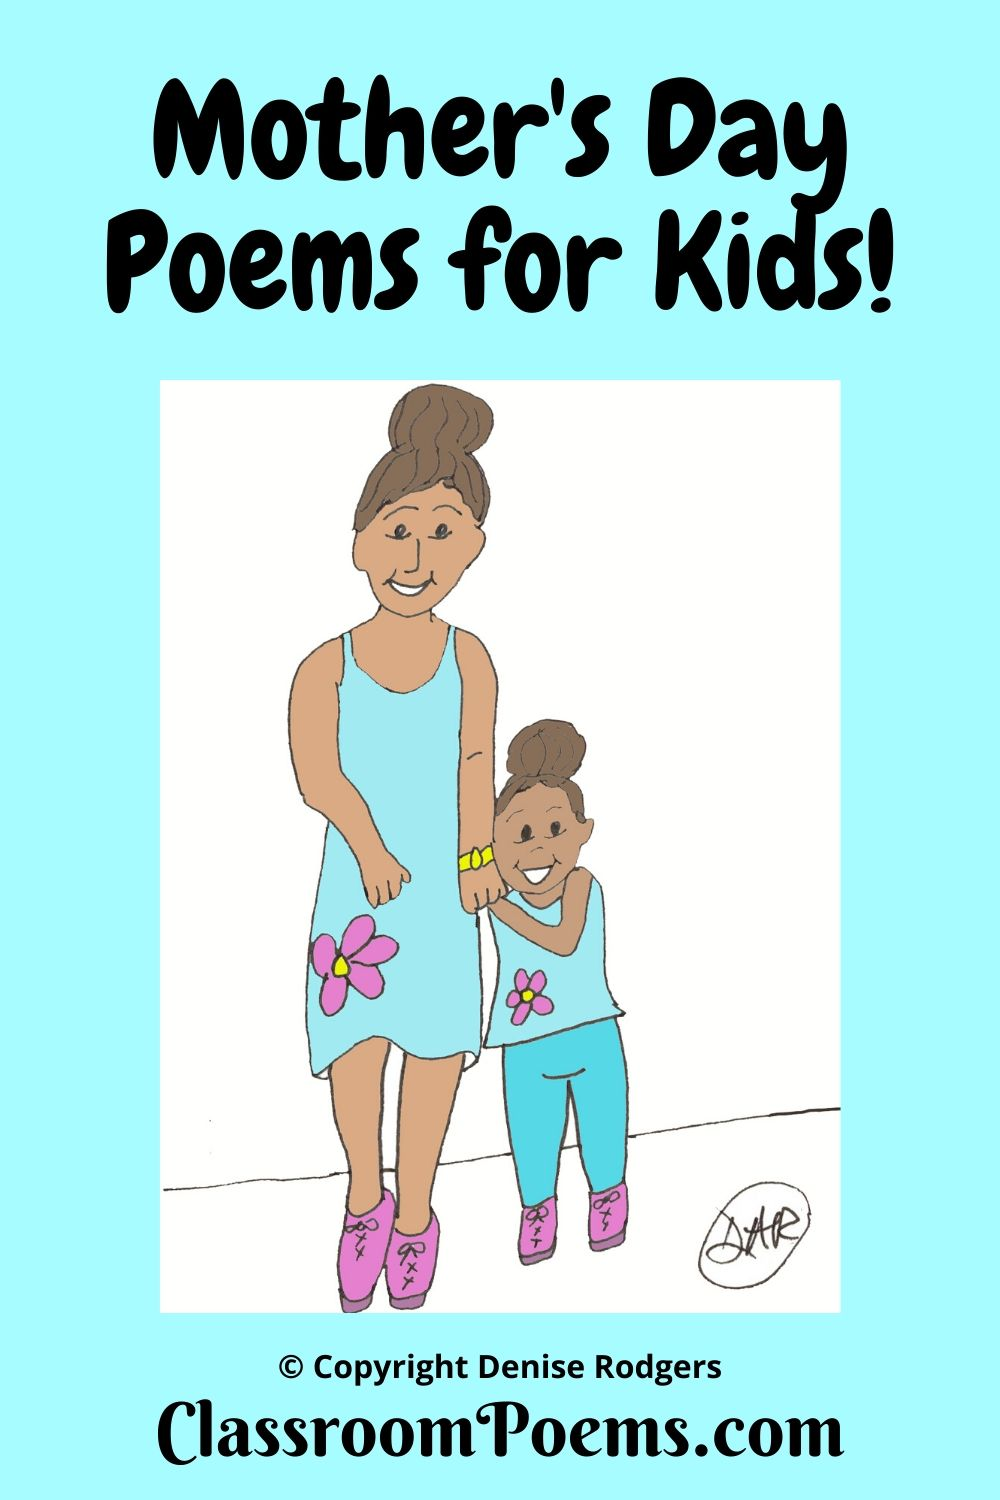 Mothers Day poems.